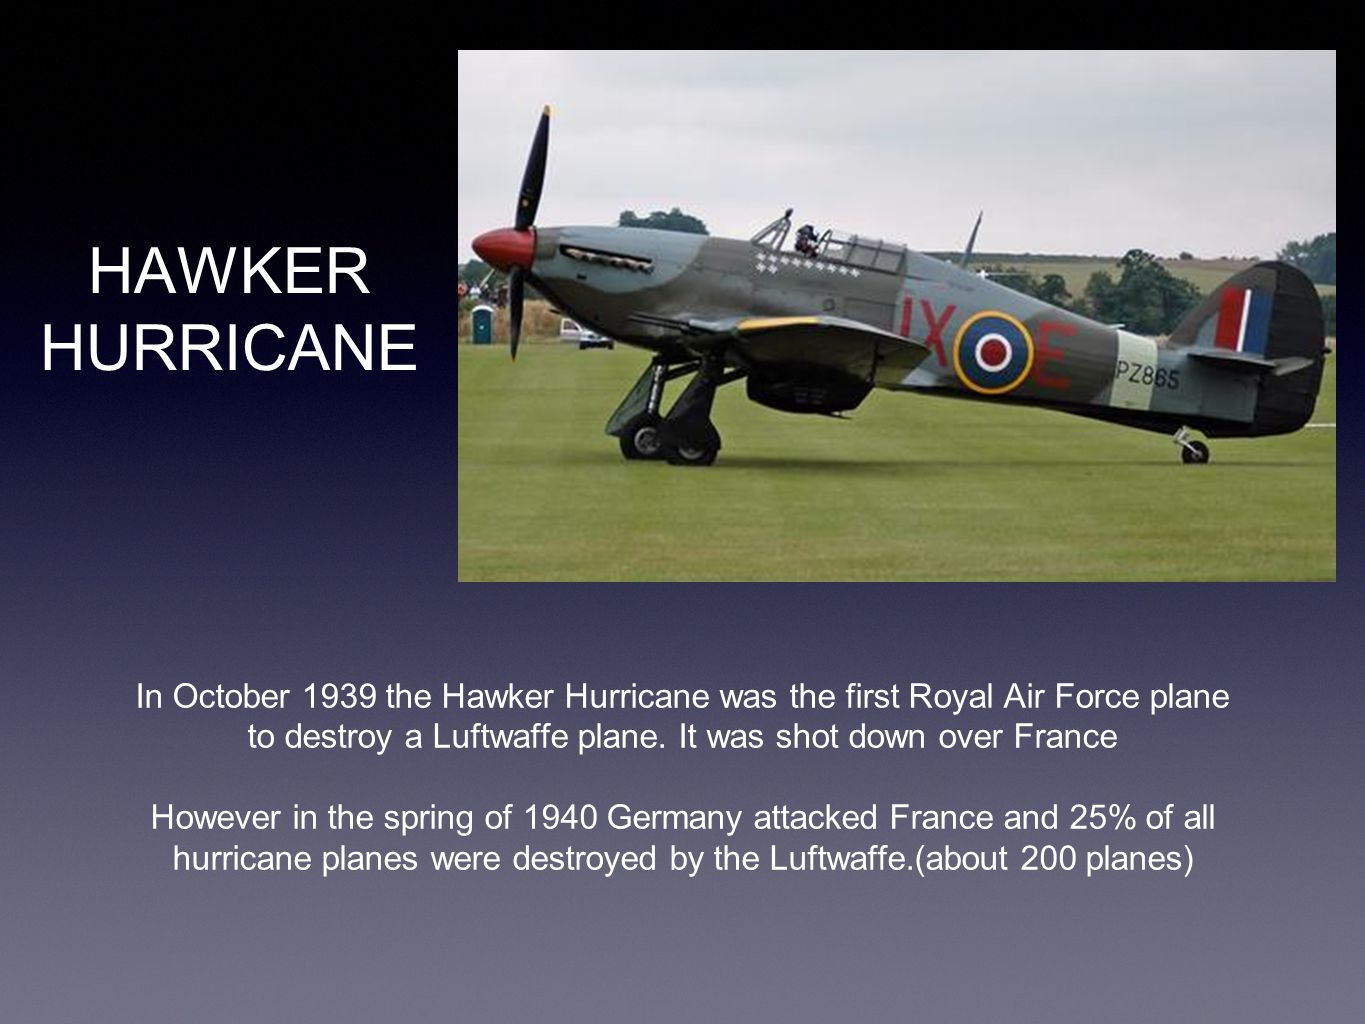 HAWKER HURRICANE In October 1939 the Hawker Hurricane was the first Royal Air Force plane to destroy a Luftwaffe plane. It was shot down over France H